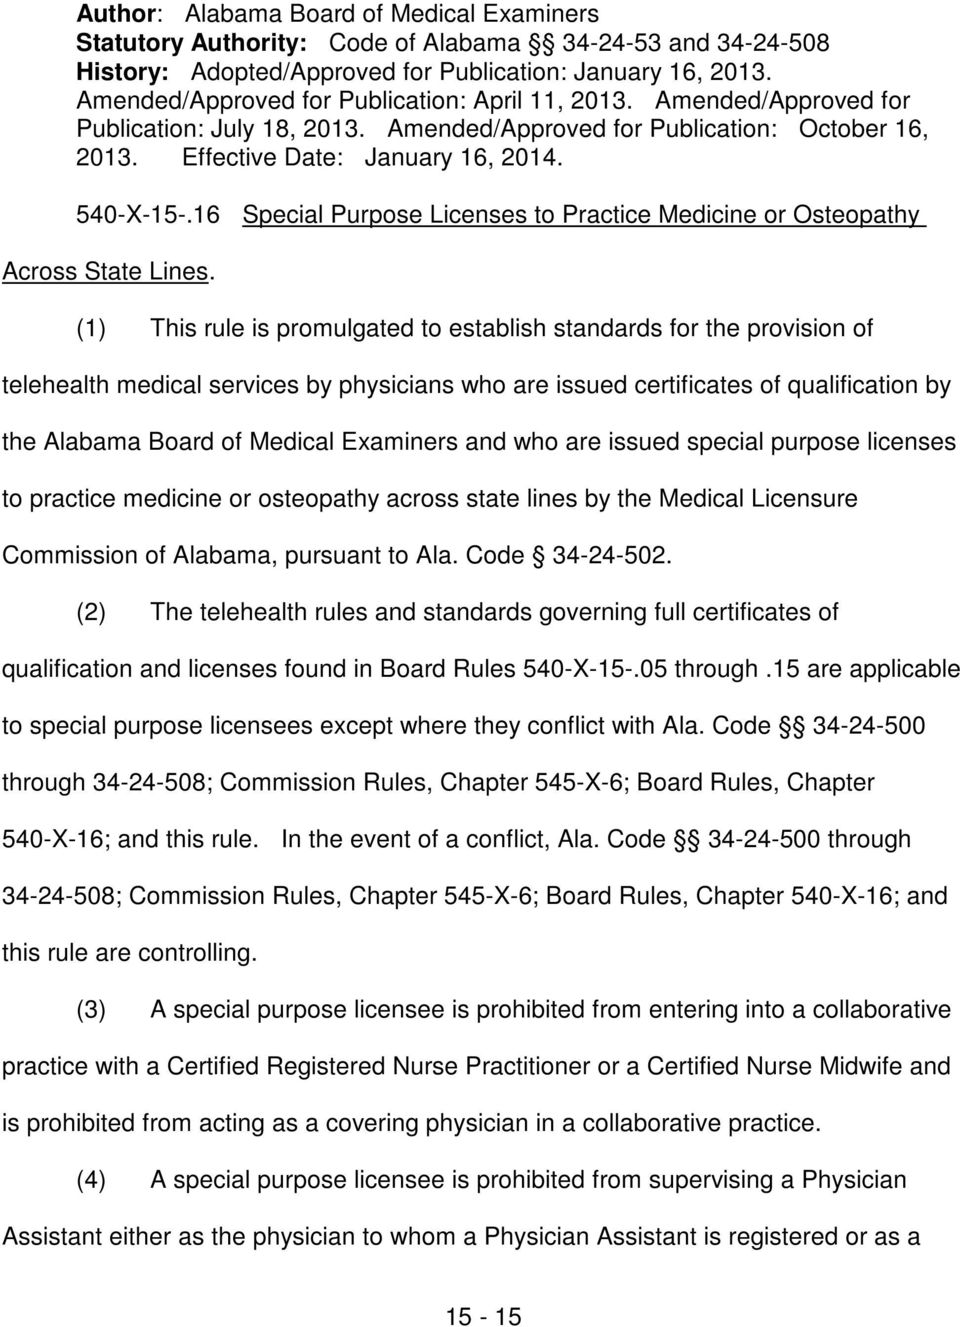 Examiners and who are issued special purpose licenses to practice medicine or osteopathy across state lines by the Medical Licensure Commission of Alabama, pursuant to Ala. Code 34-24-502.